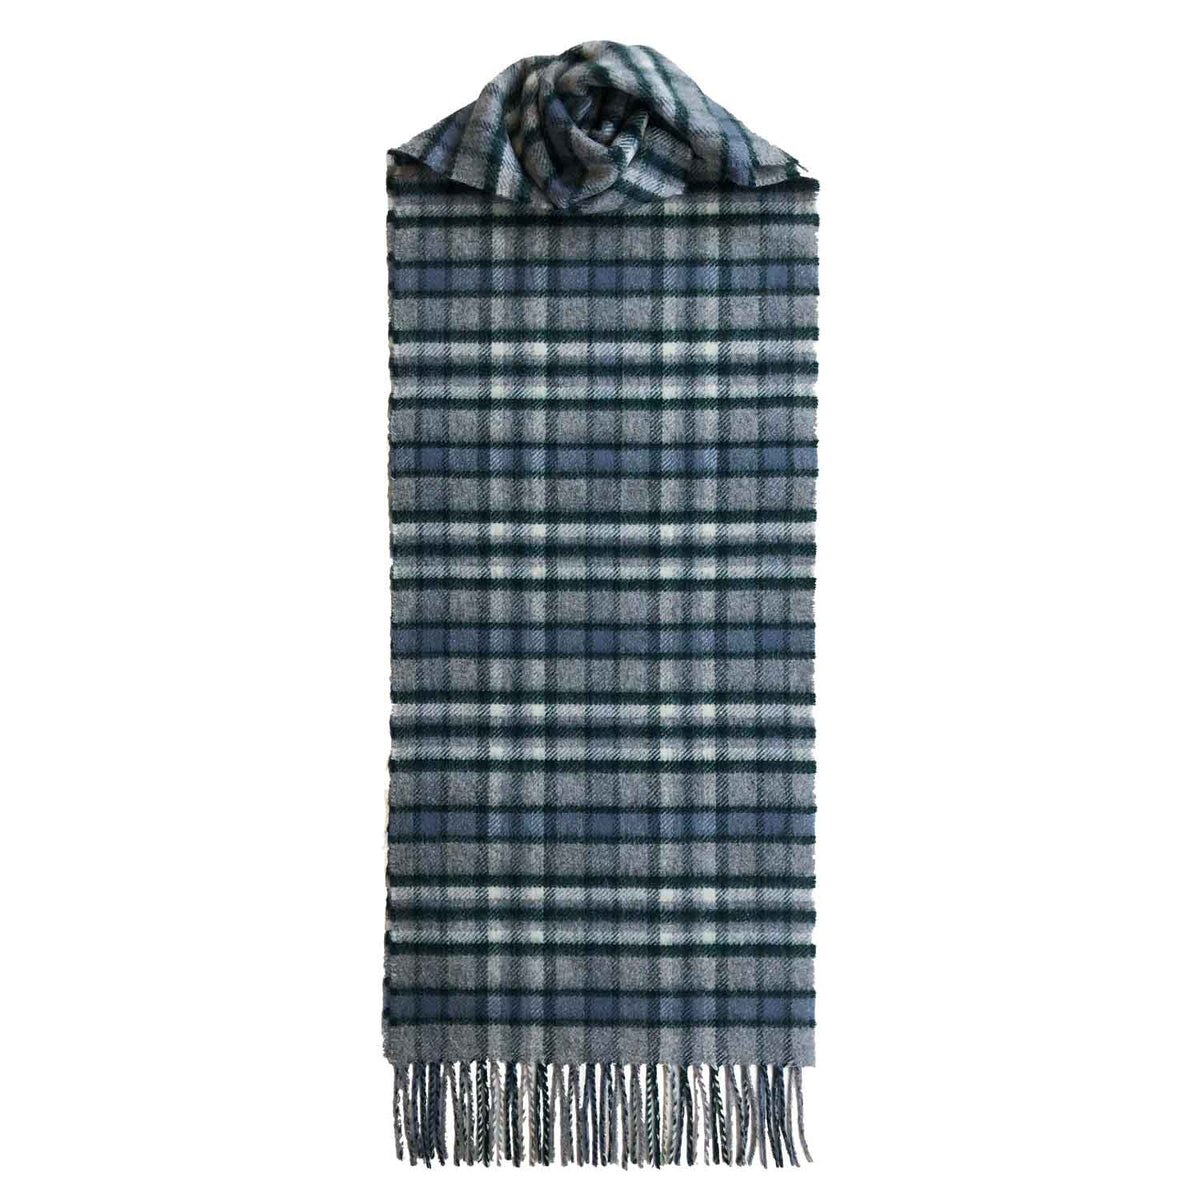 Lomond Cashmere | Grey Green | Check Cashmere Scarf With Fringes | Made in Scotland | Shop at The Cashmere Choice | London